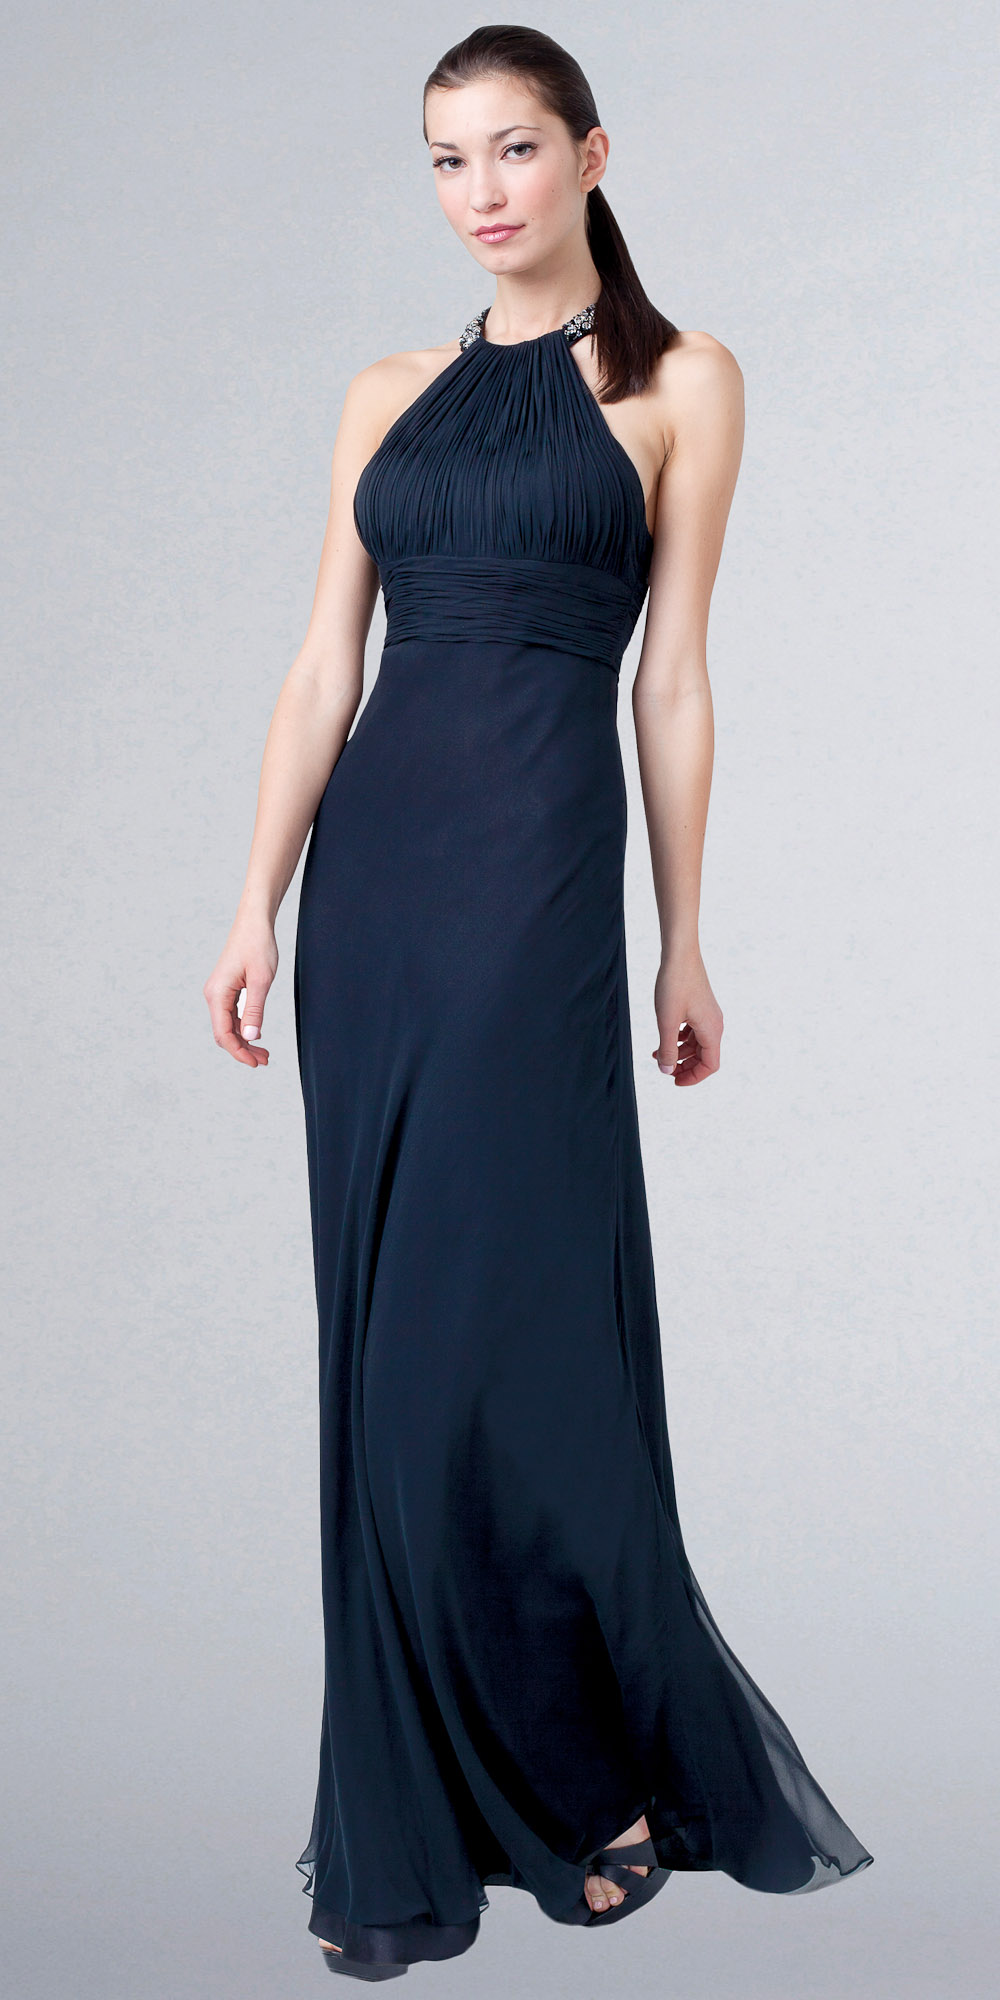 Dress evening gown - Style Jeans